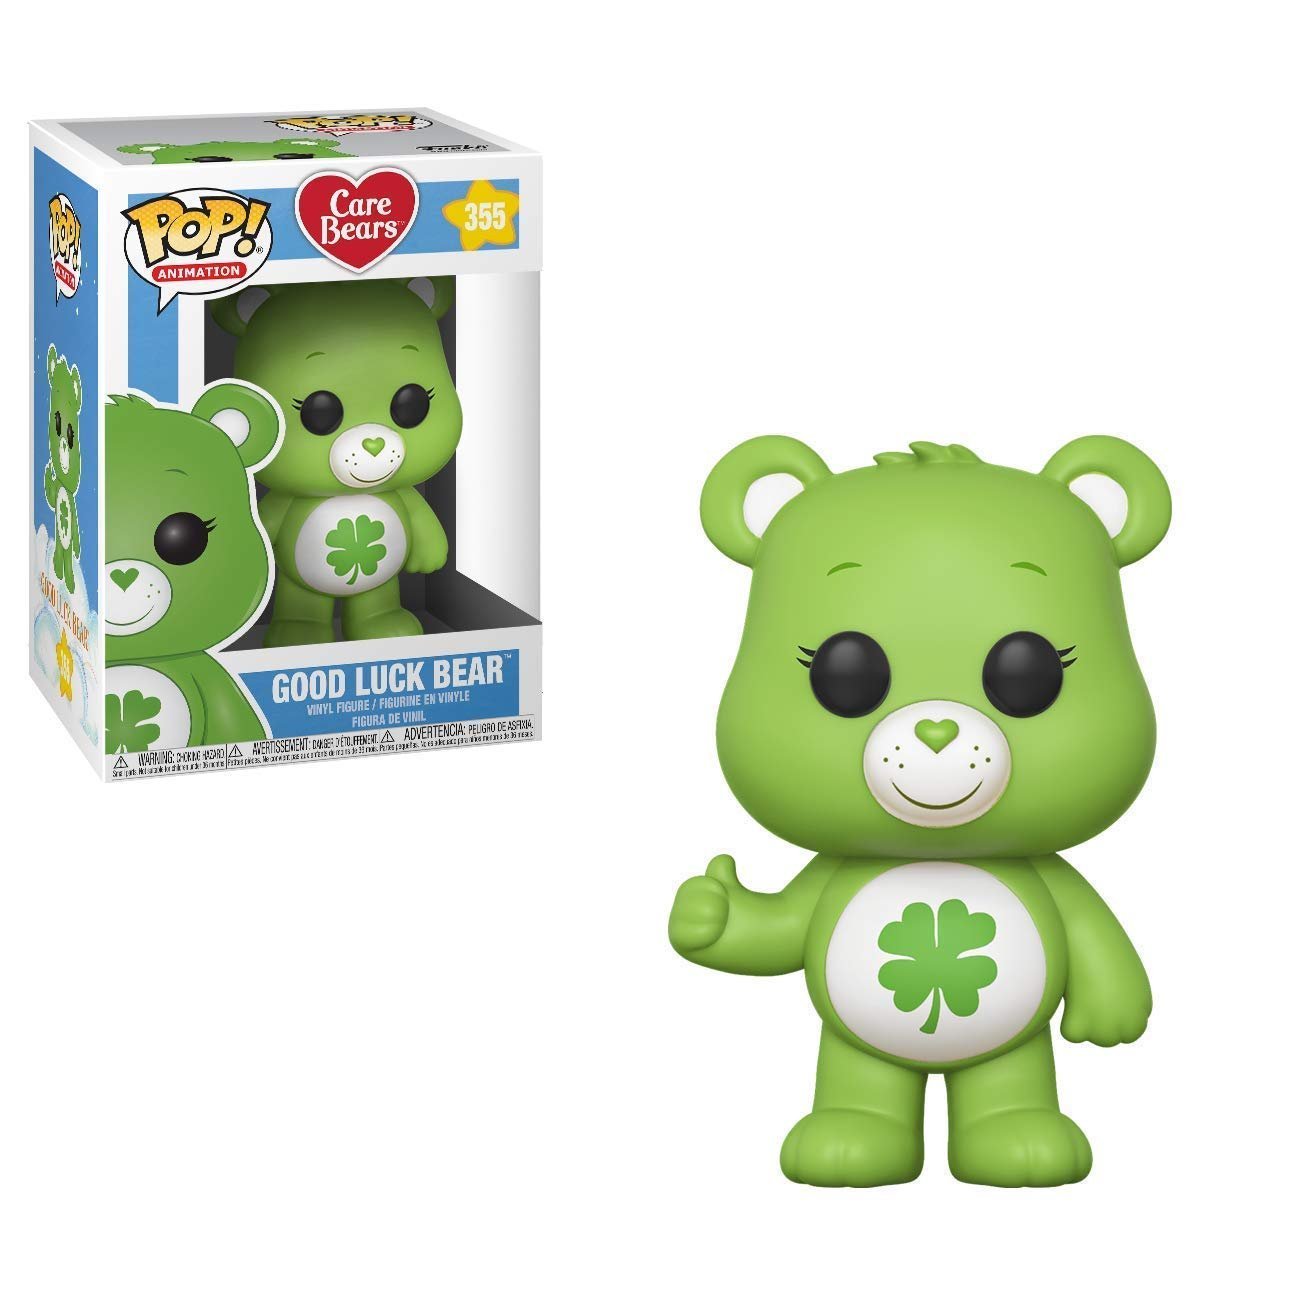 Funko Pop! Care Bears Good Luck Bear #355